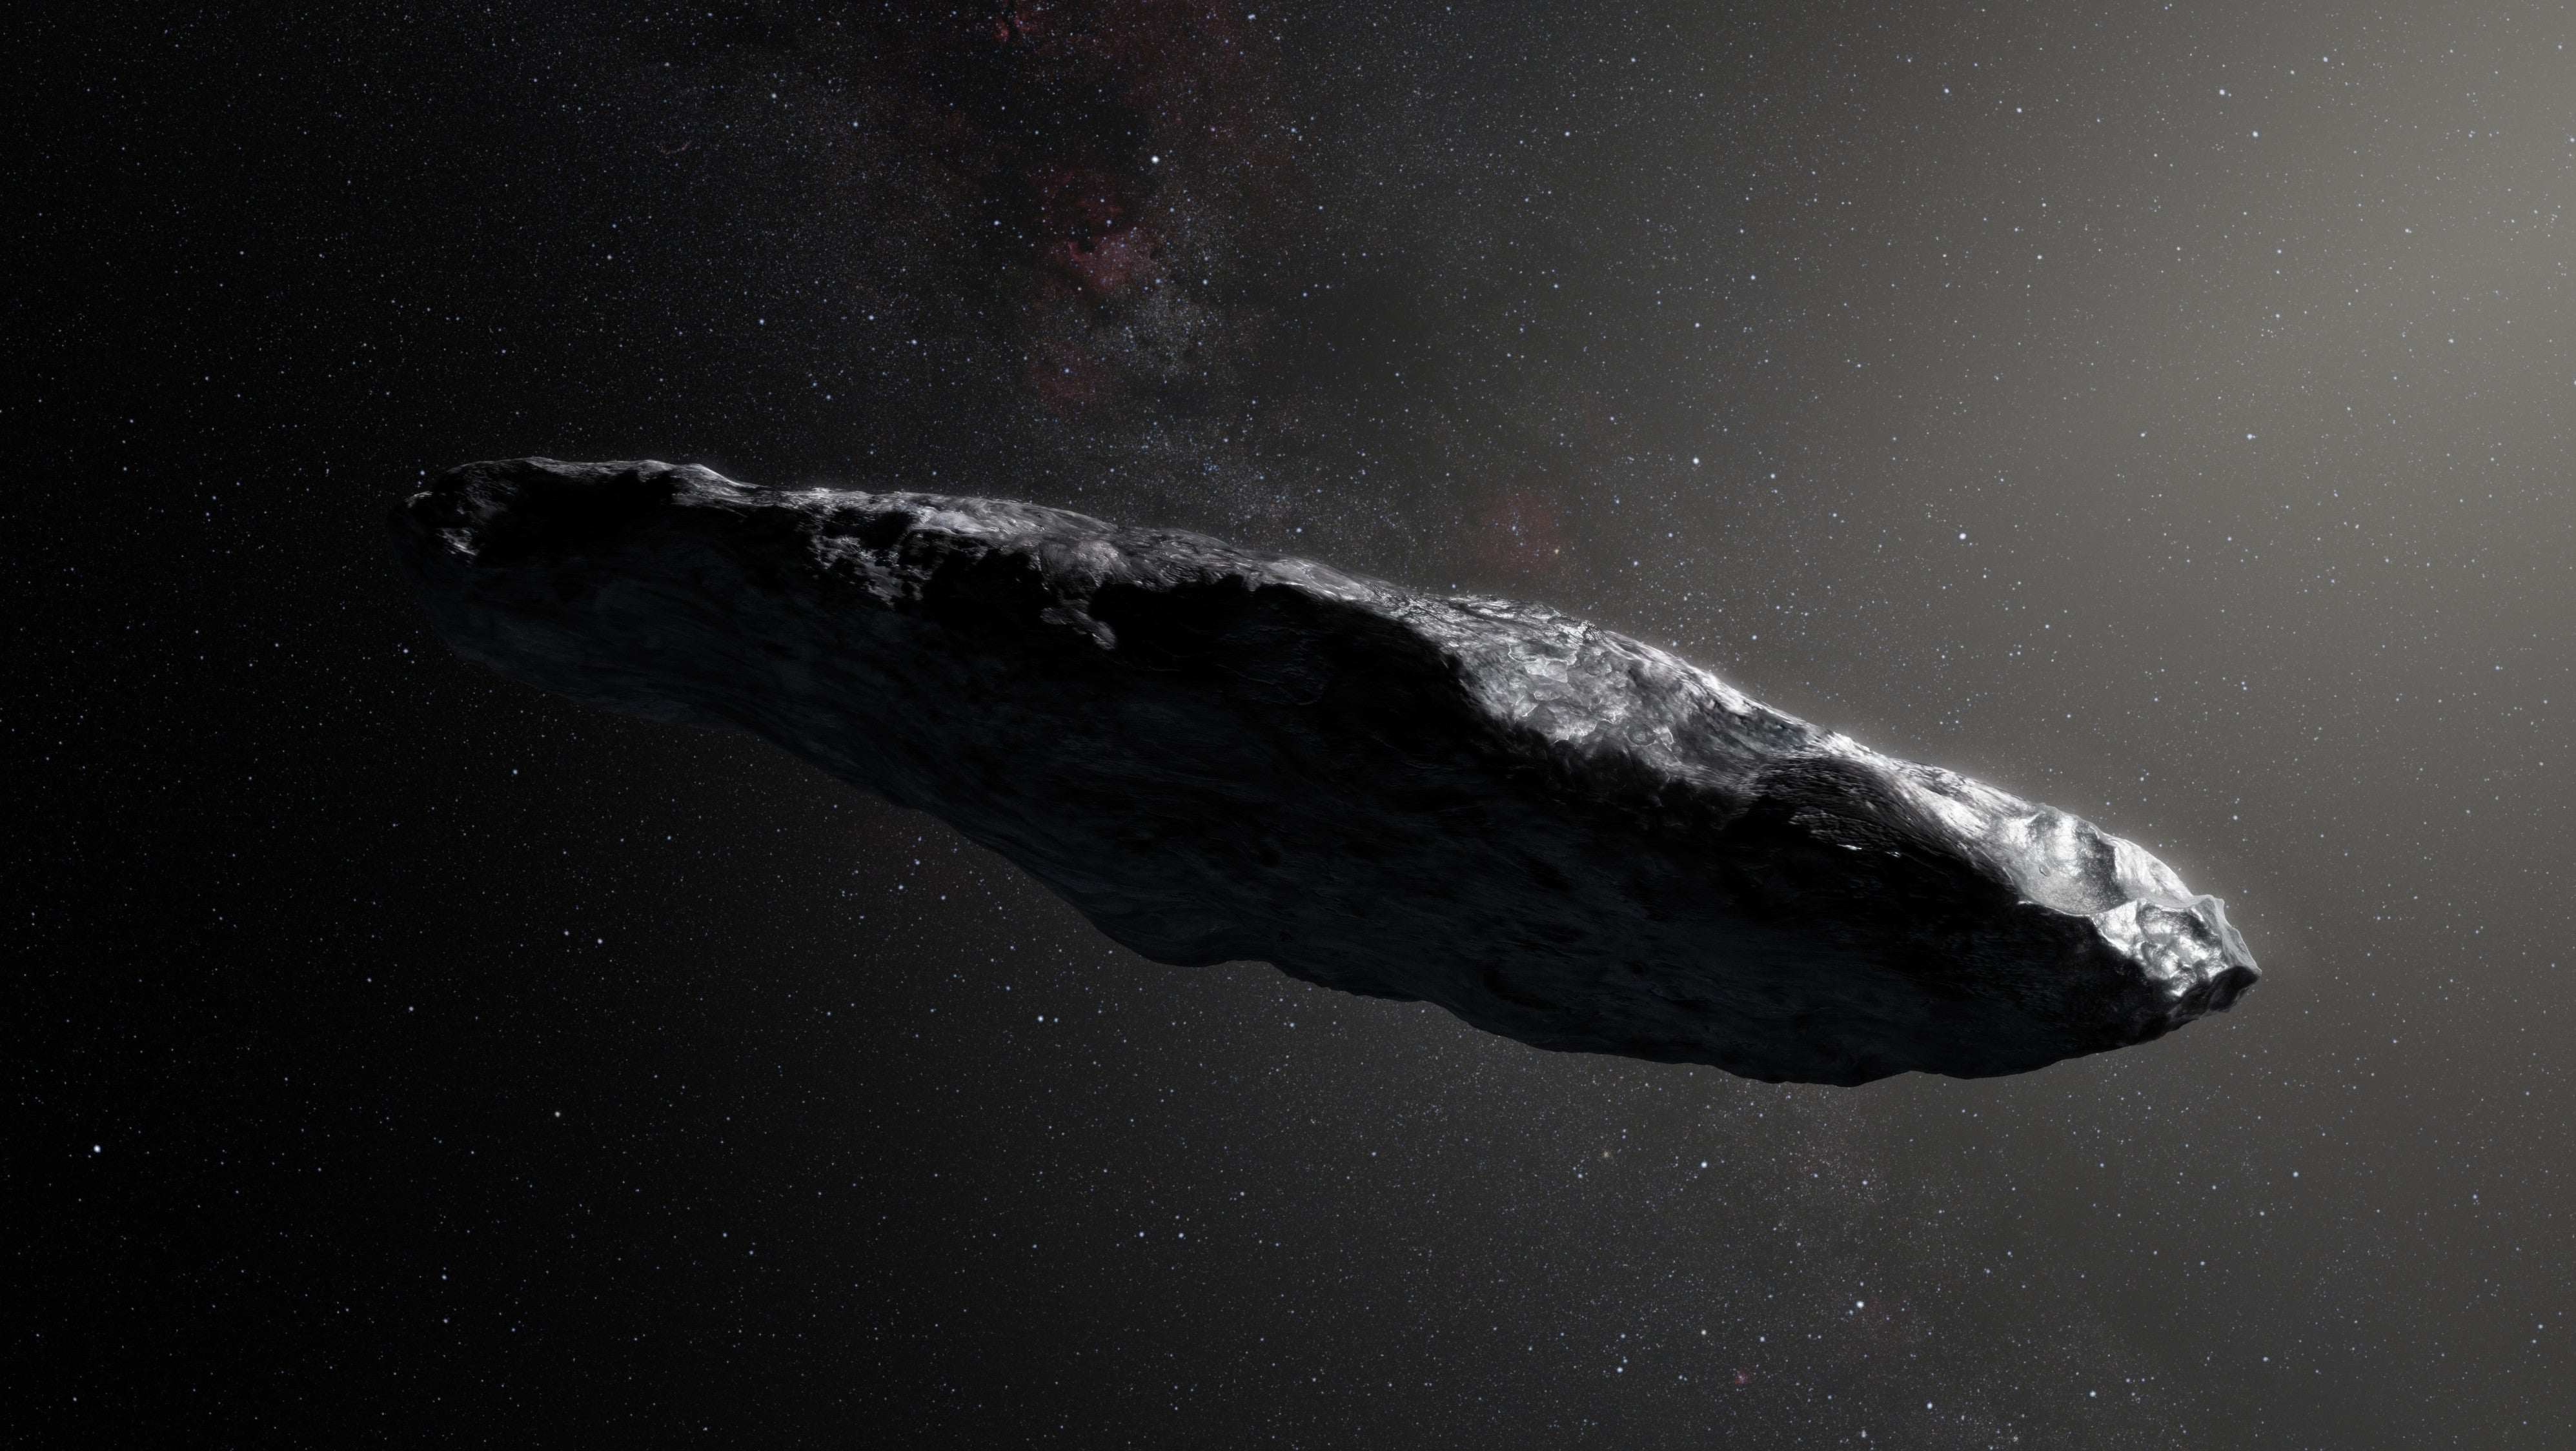 Study Finds Weird Interstellar Object 'Oumuamua Is Indeed A Smol Boi